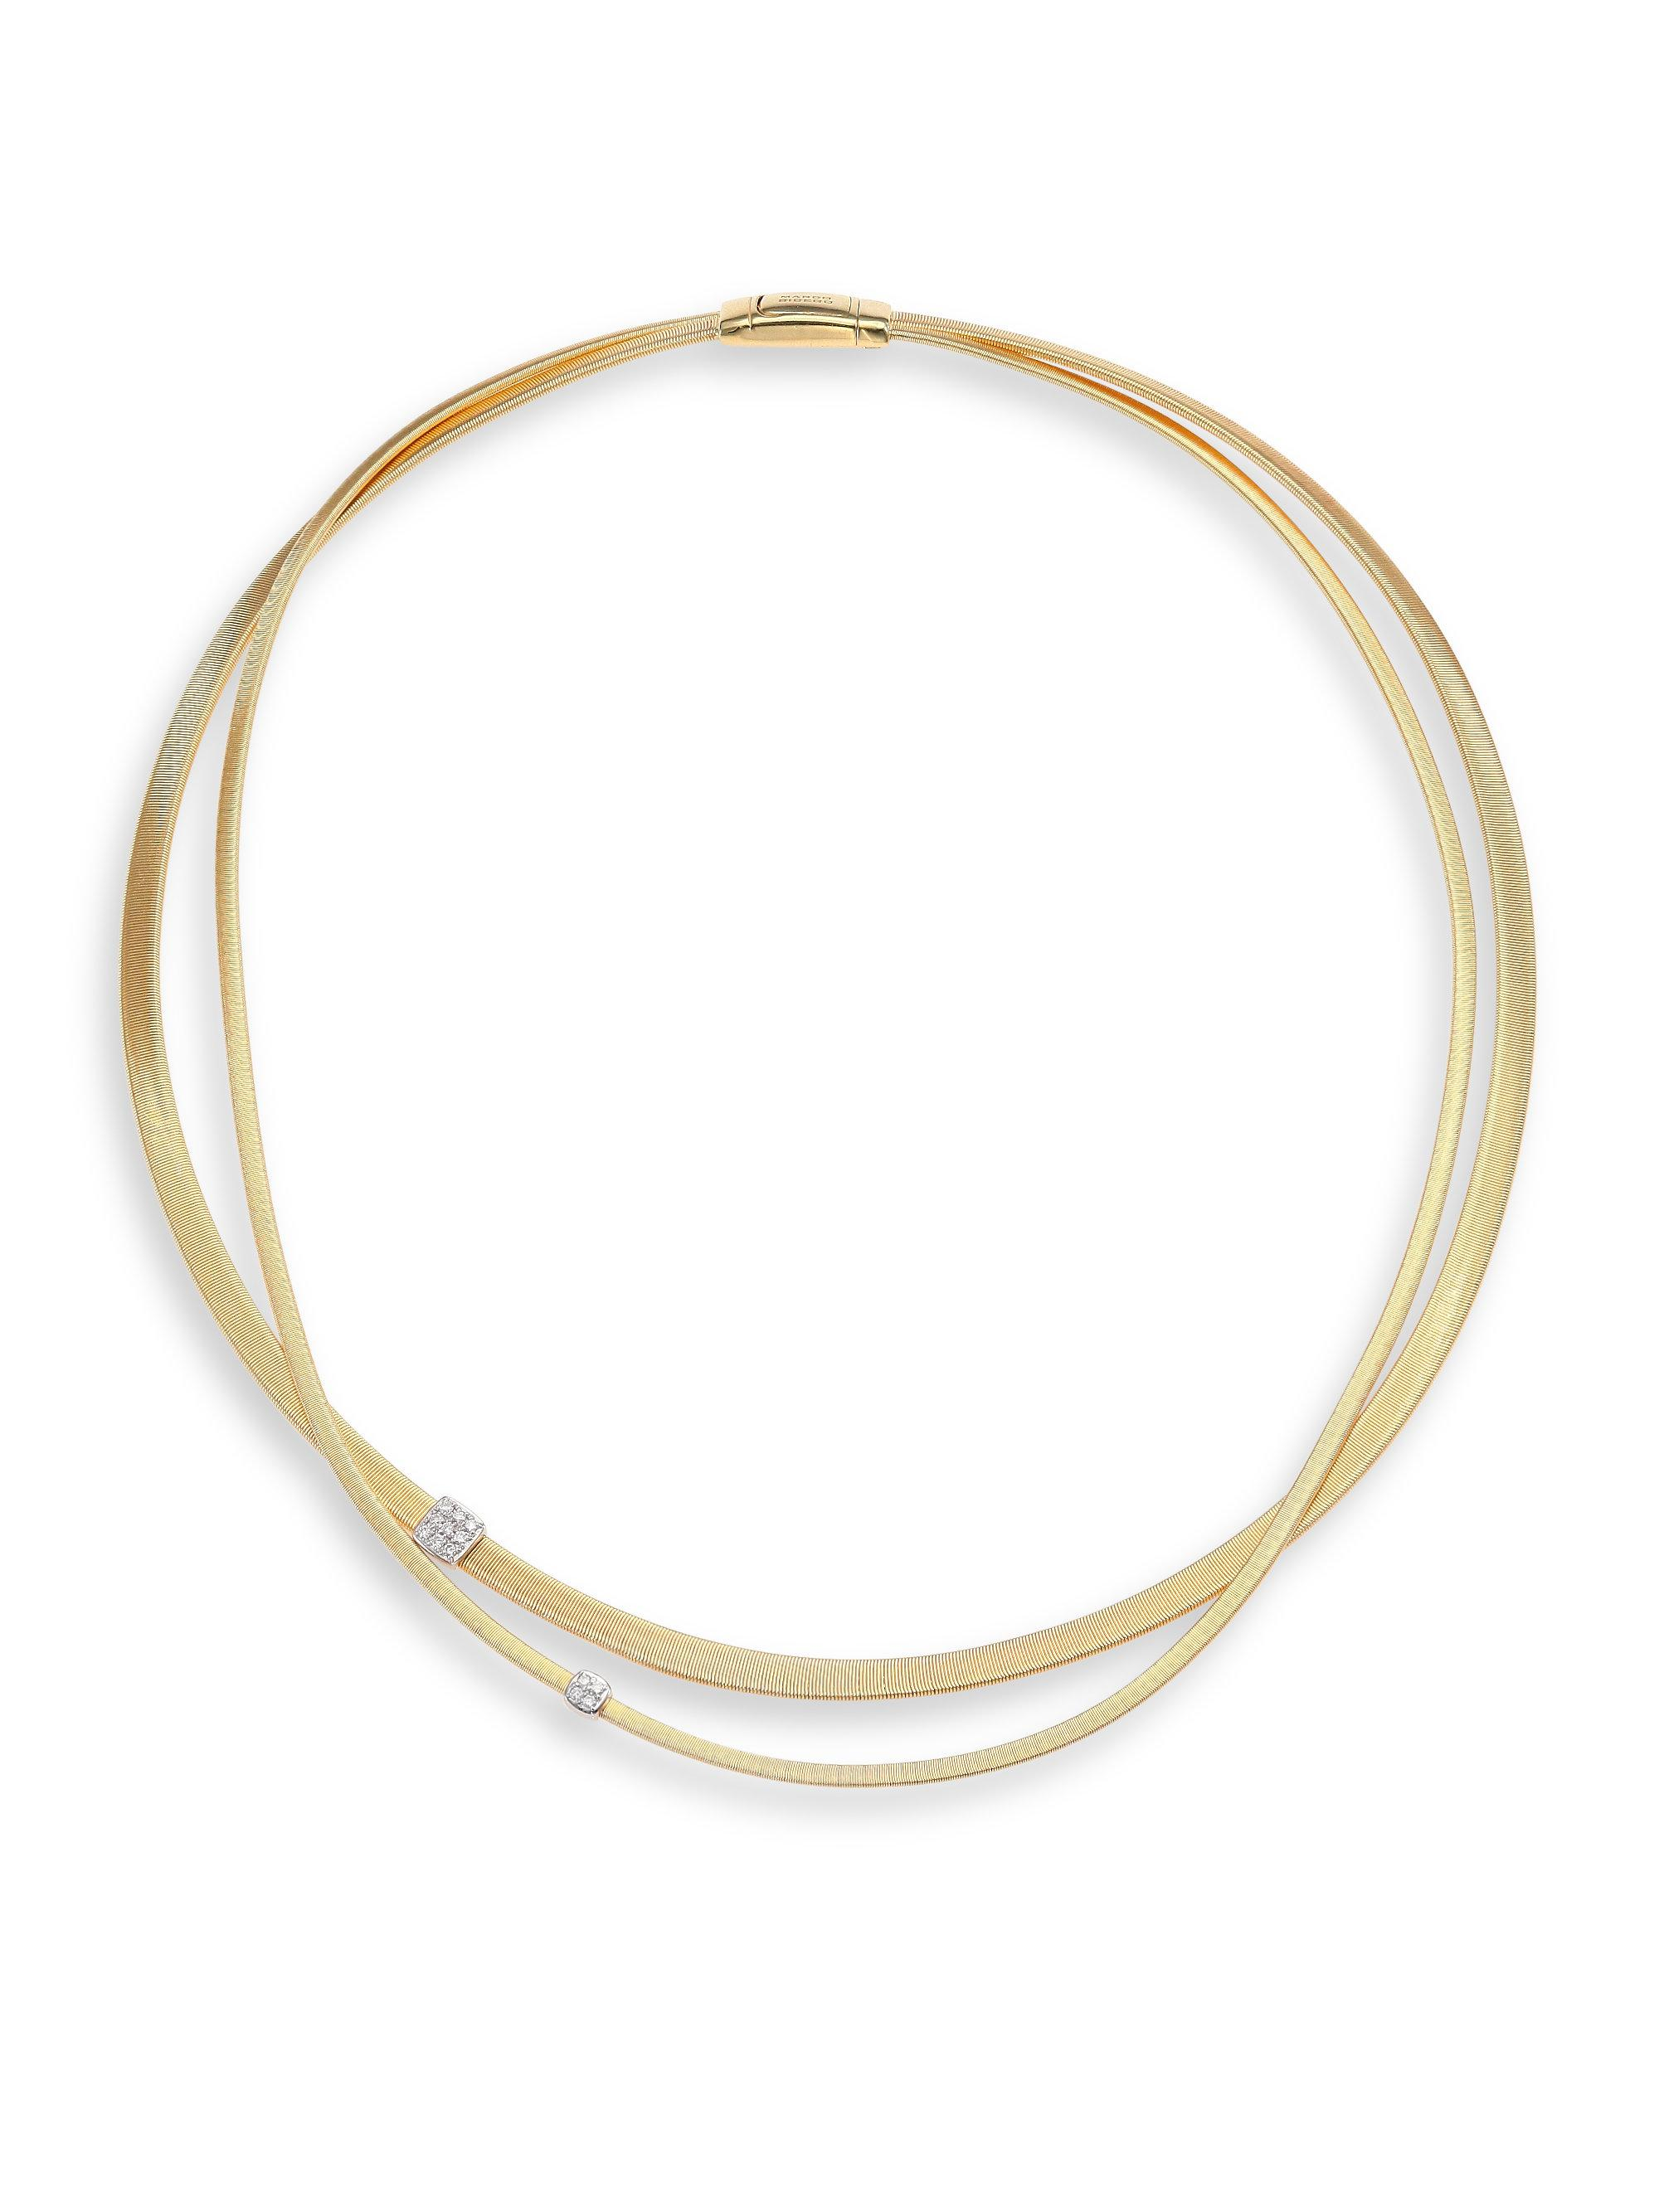 Marco Bicego Masai 18K Yellow Gold Two-Strand Necklace with Diamond Stations JvM1E7h